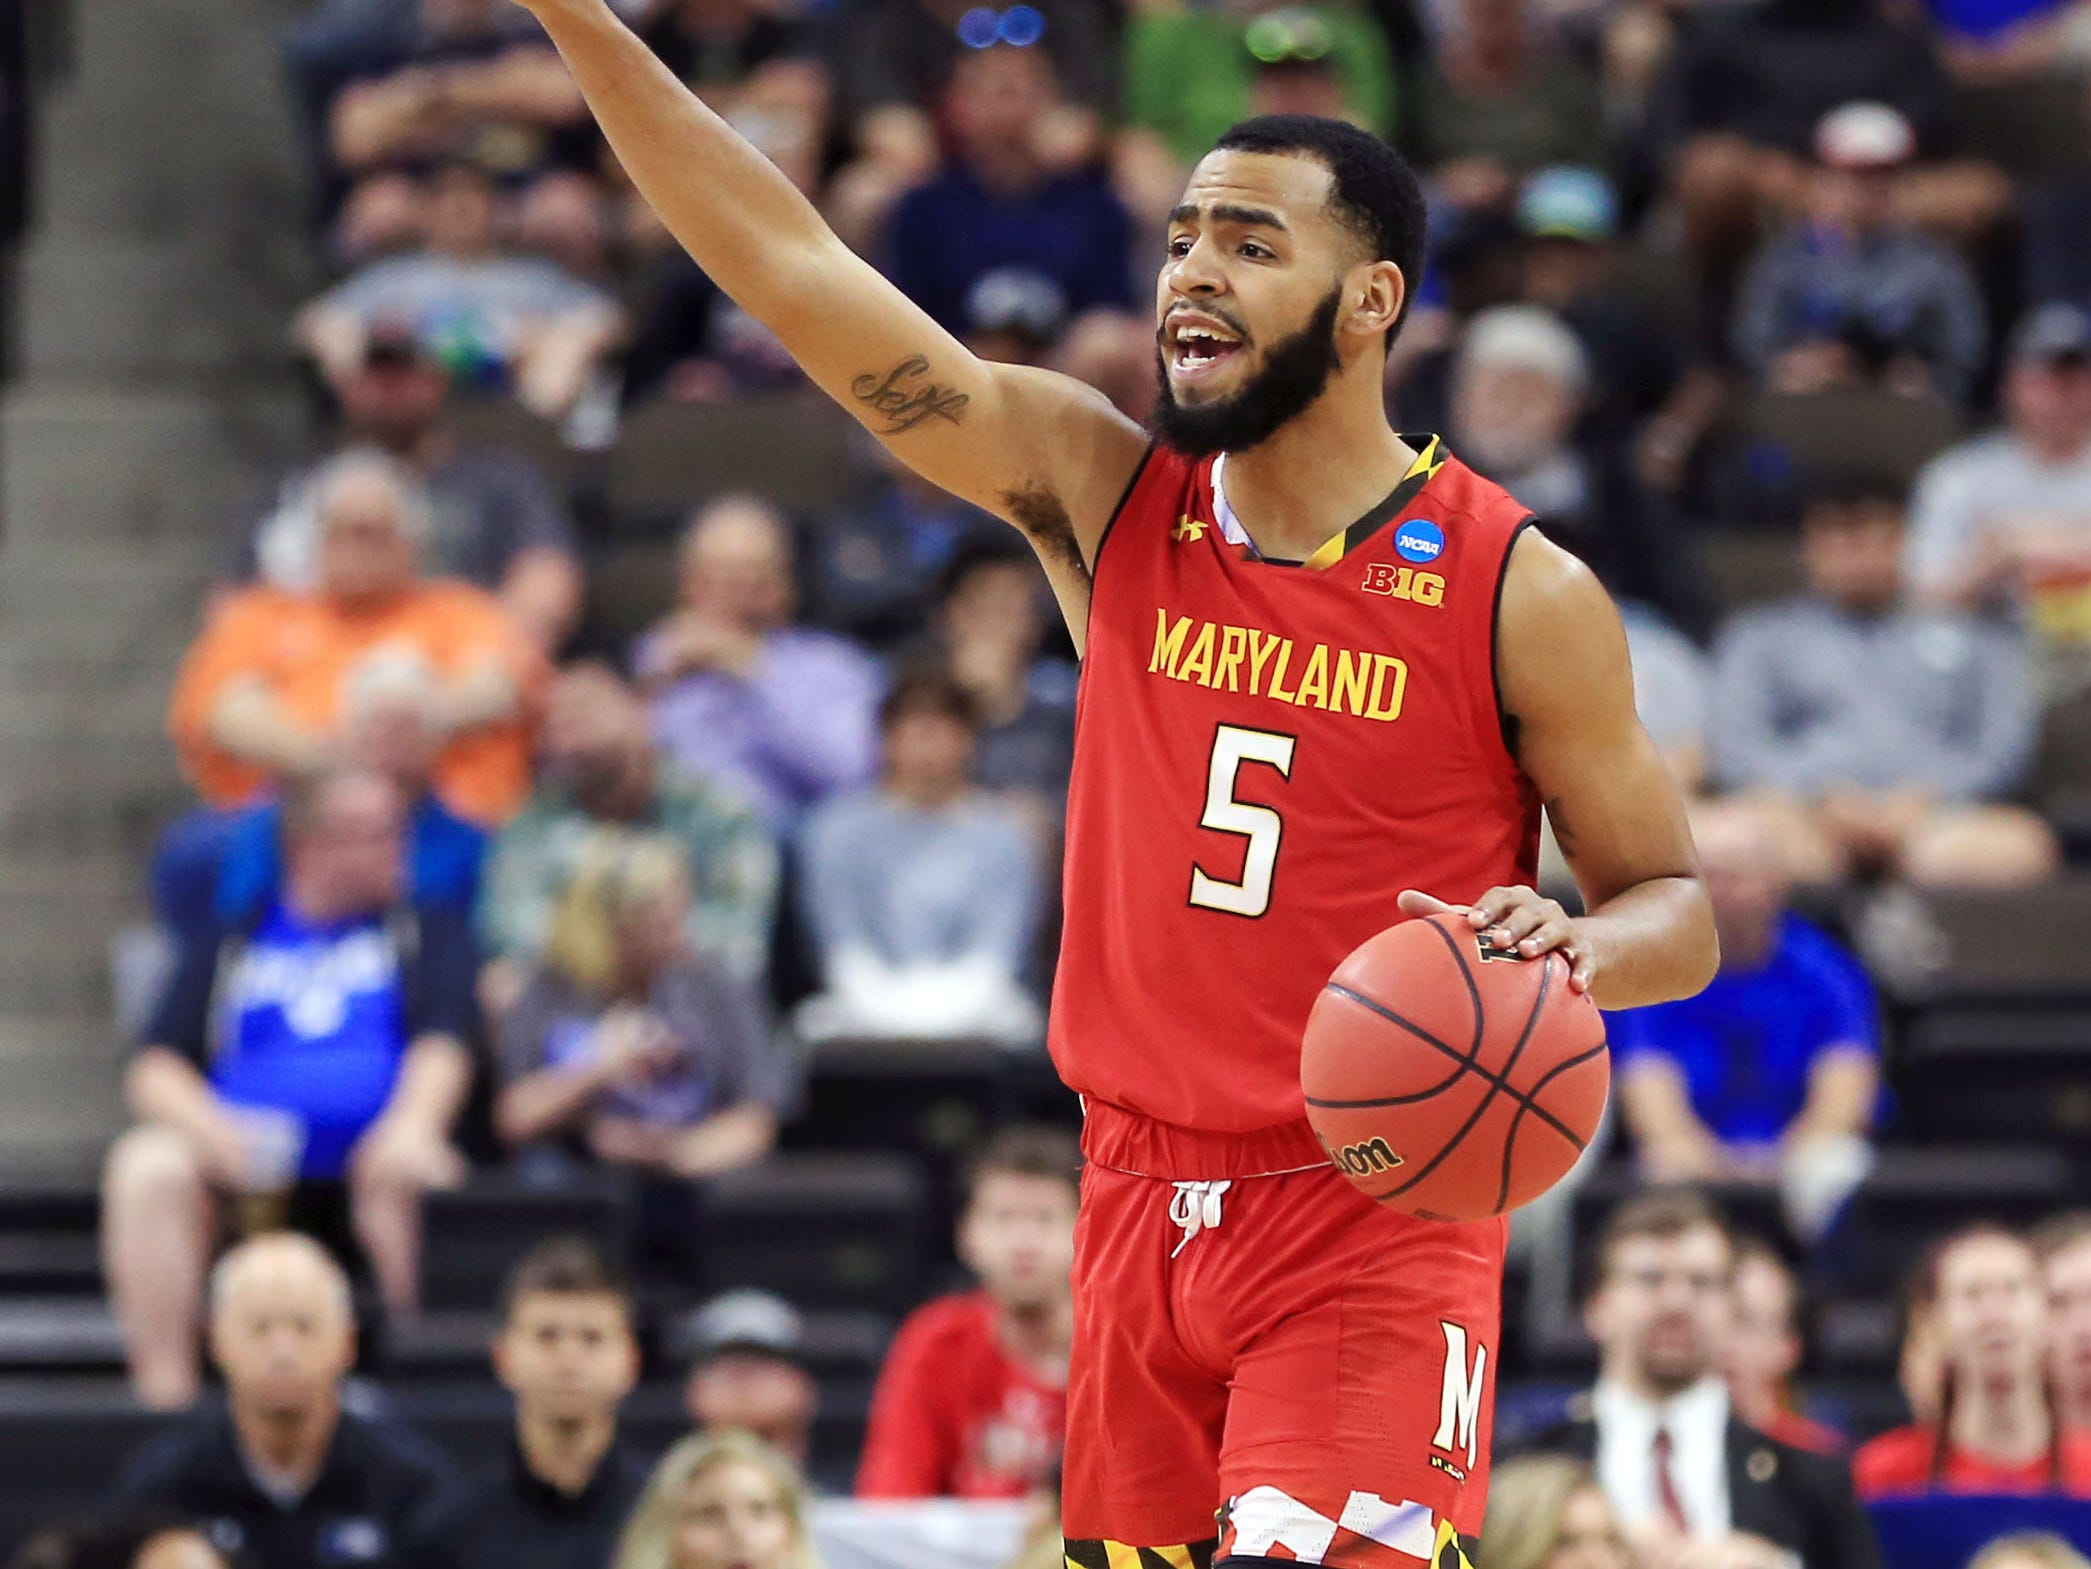 Mar 23, 2019; Jacksonville, FL, USA; Maryland Terrapins guard Eric Ayala (5) signals a play against the LSU Tigers during the first half in the second round of the 2019 NCAA Tournament at Jacksonville Veterans Memorial Arena. Mandatory Credit: Matt Stamey-USA TODAY Sports